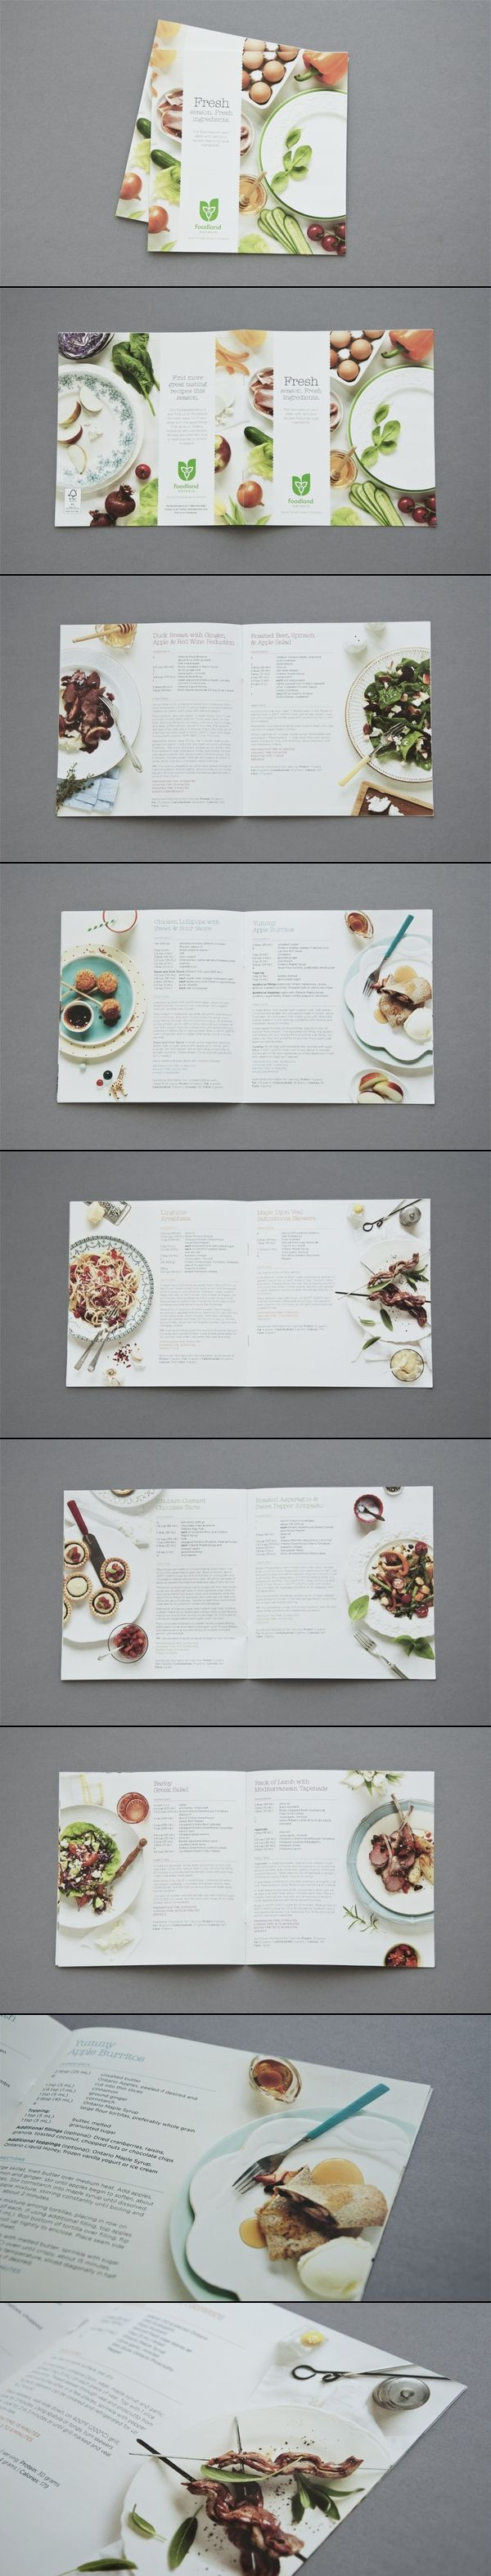 5233627123aba a grouped image for pinterest - Pin Them All